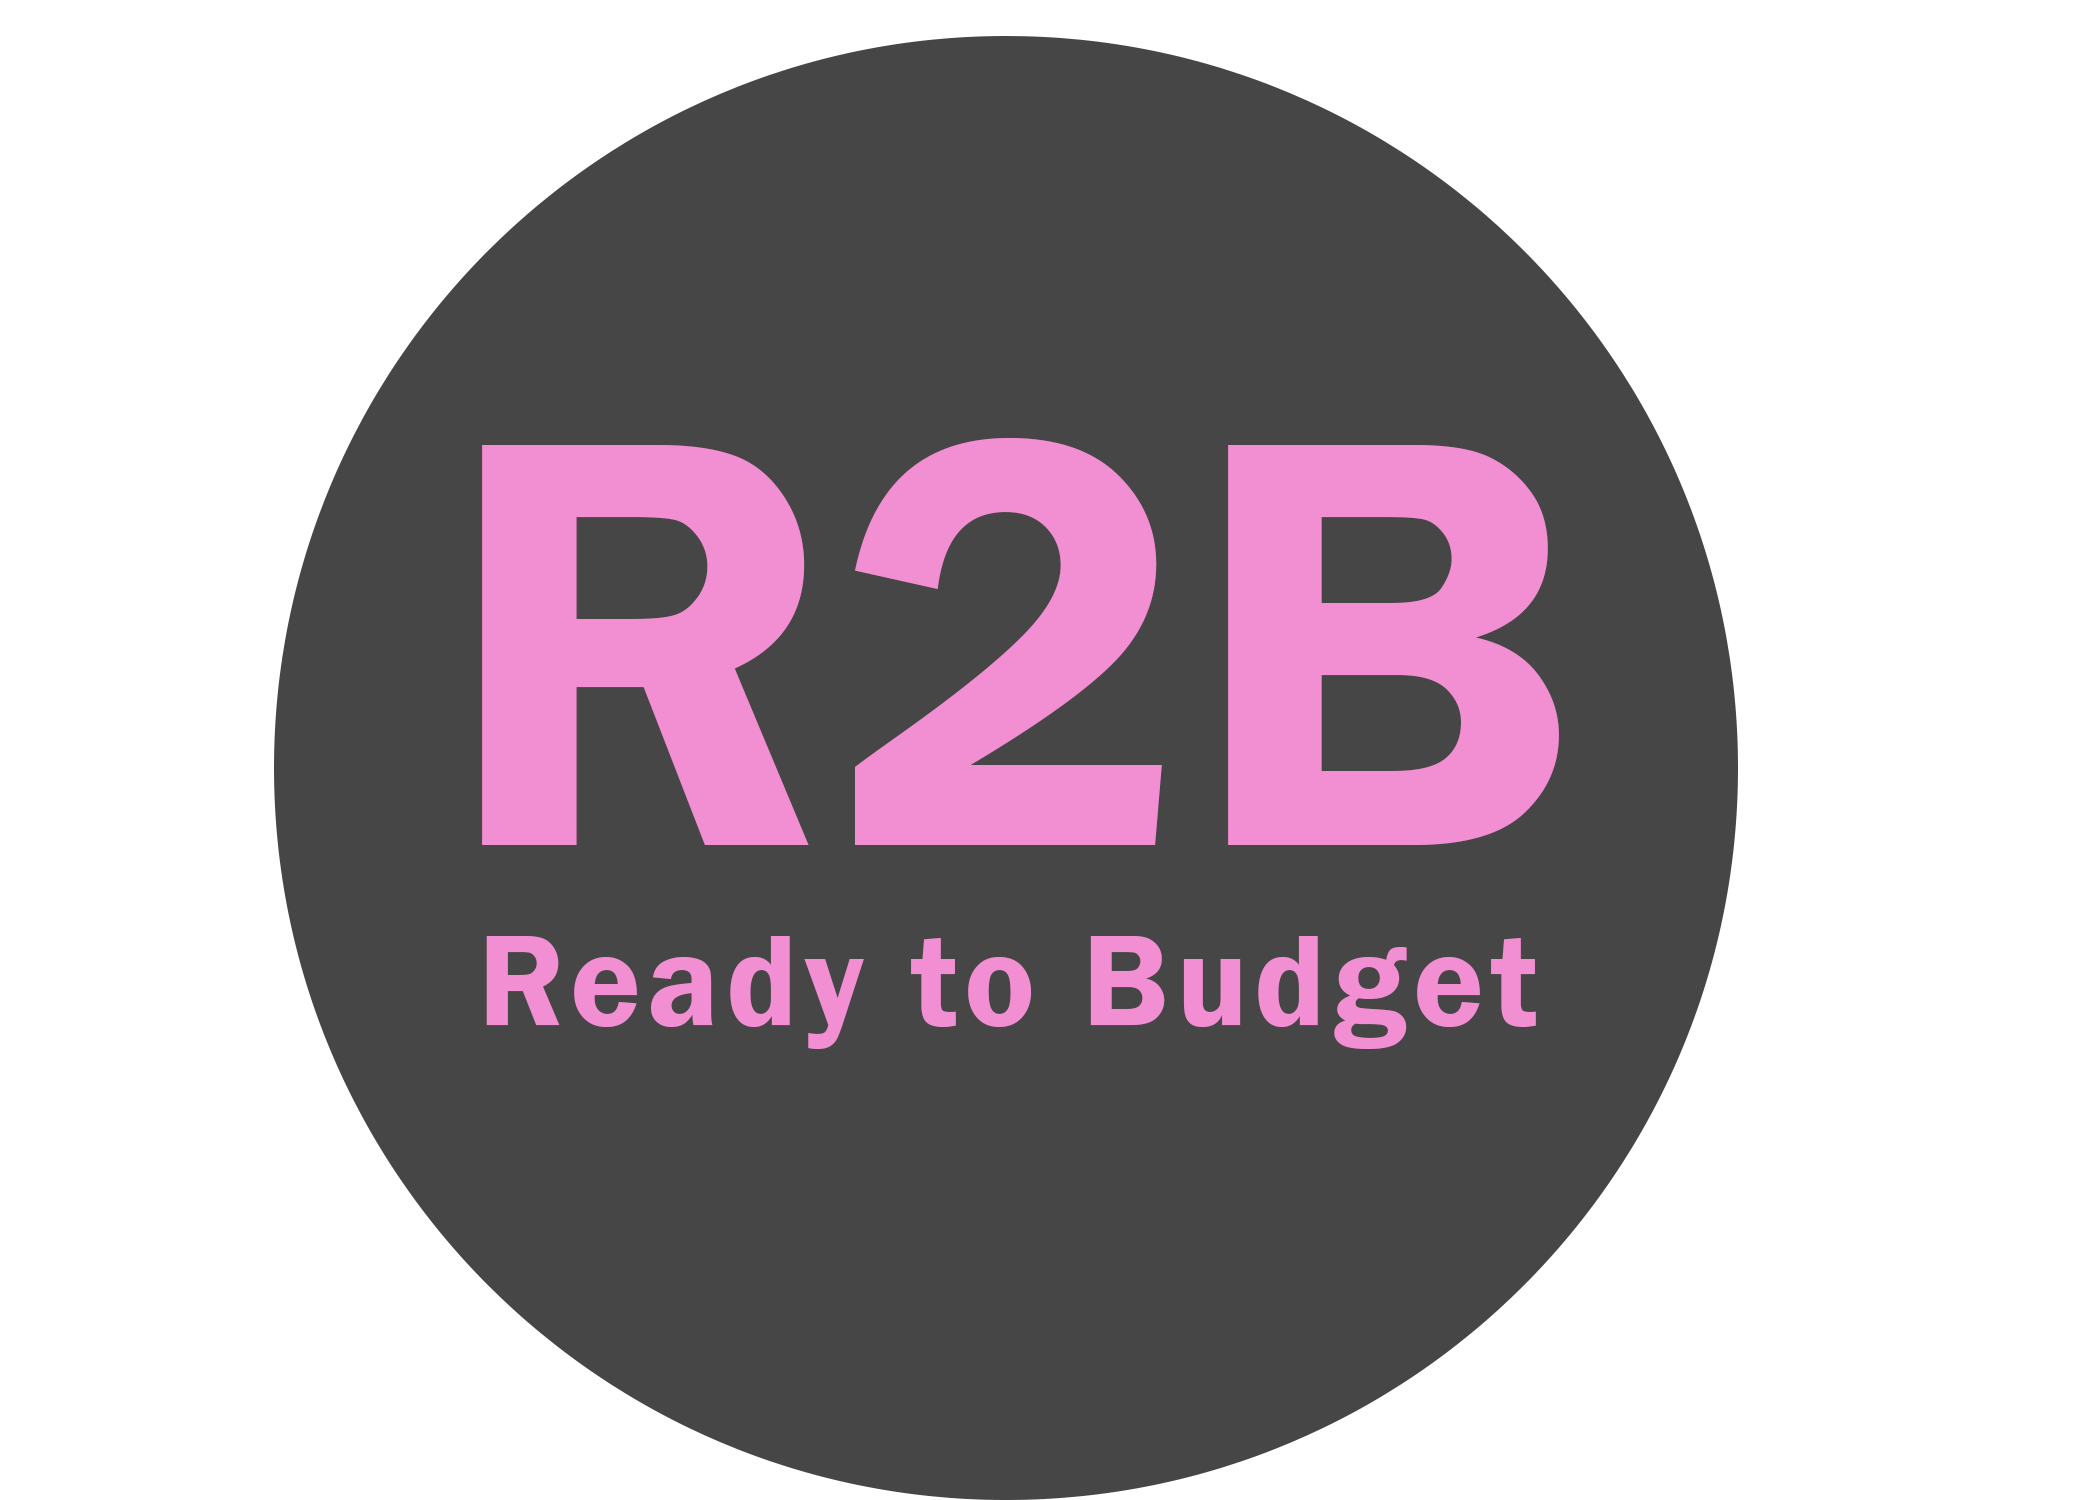 Ready to Budget